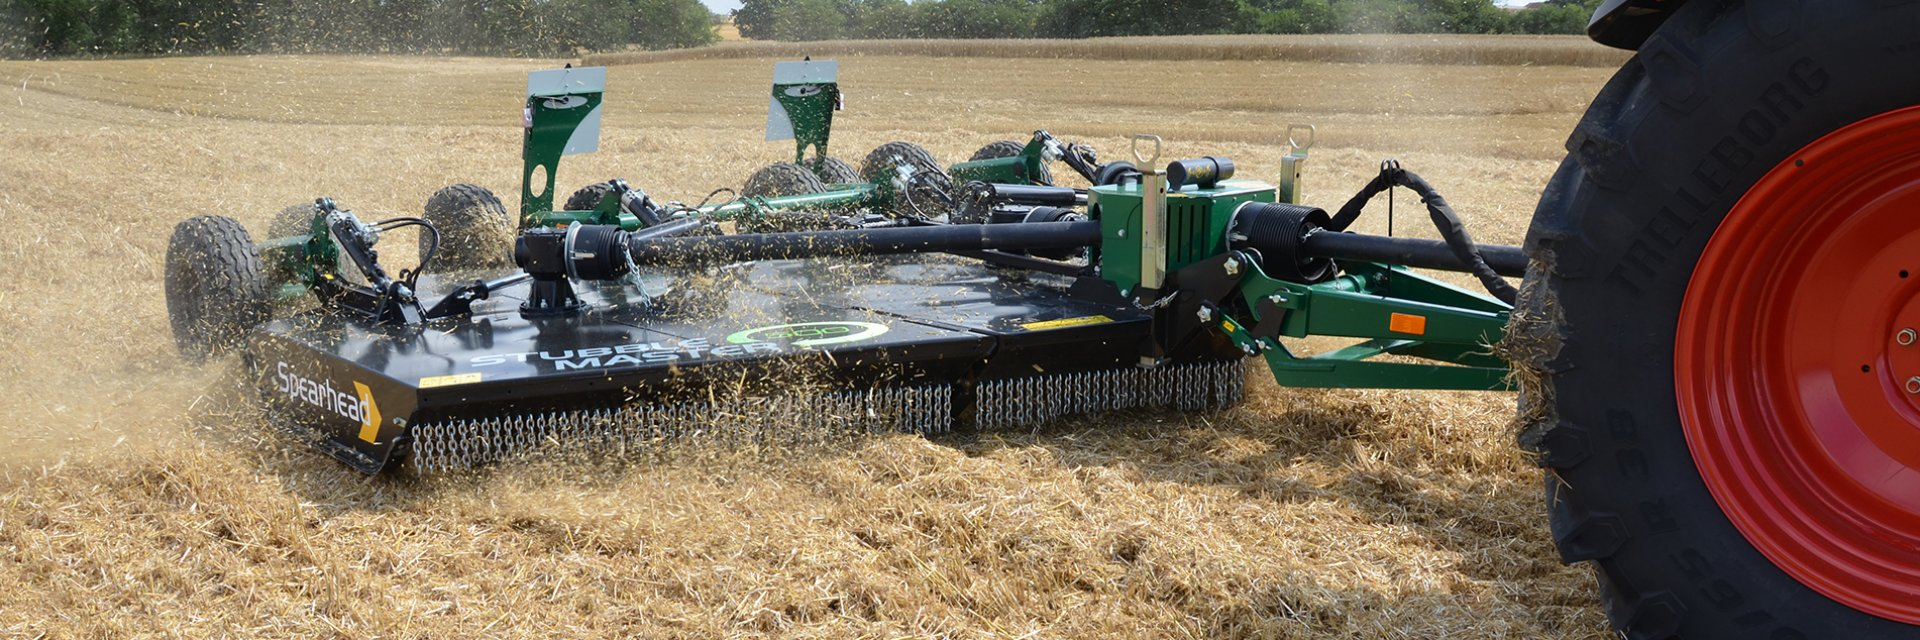 It is now more than 10 years since the first rotary mulcher designed to chop Stubble residue after harvest.